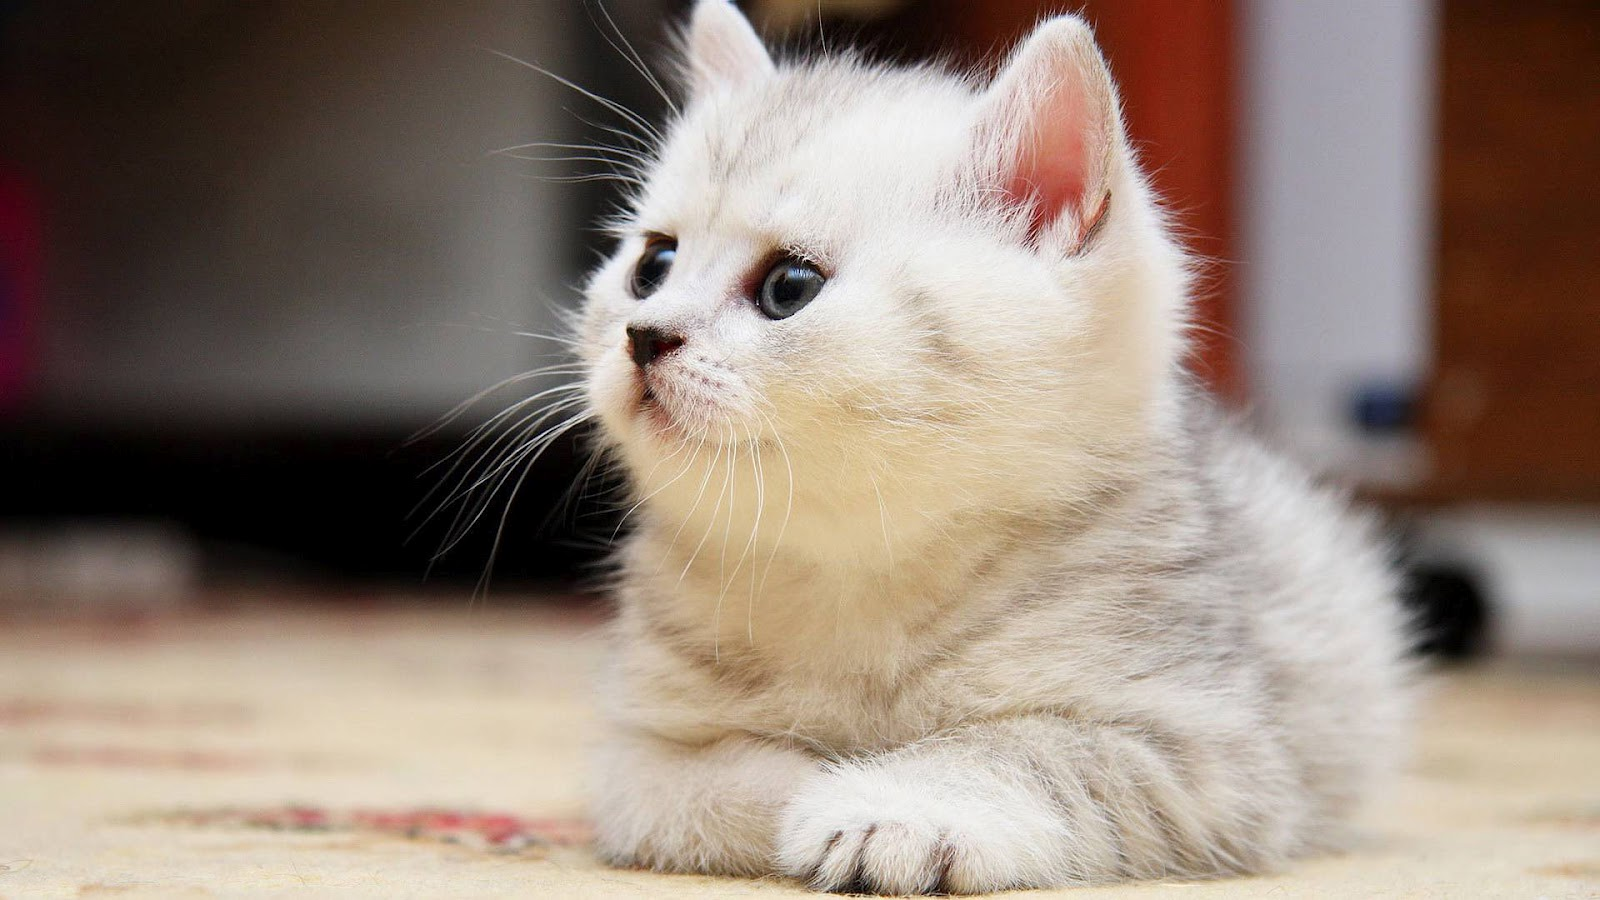 Cat Wallpapers HD Pictures One HD Wallpaper Pictures Backgrounds 1600x900